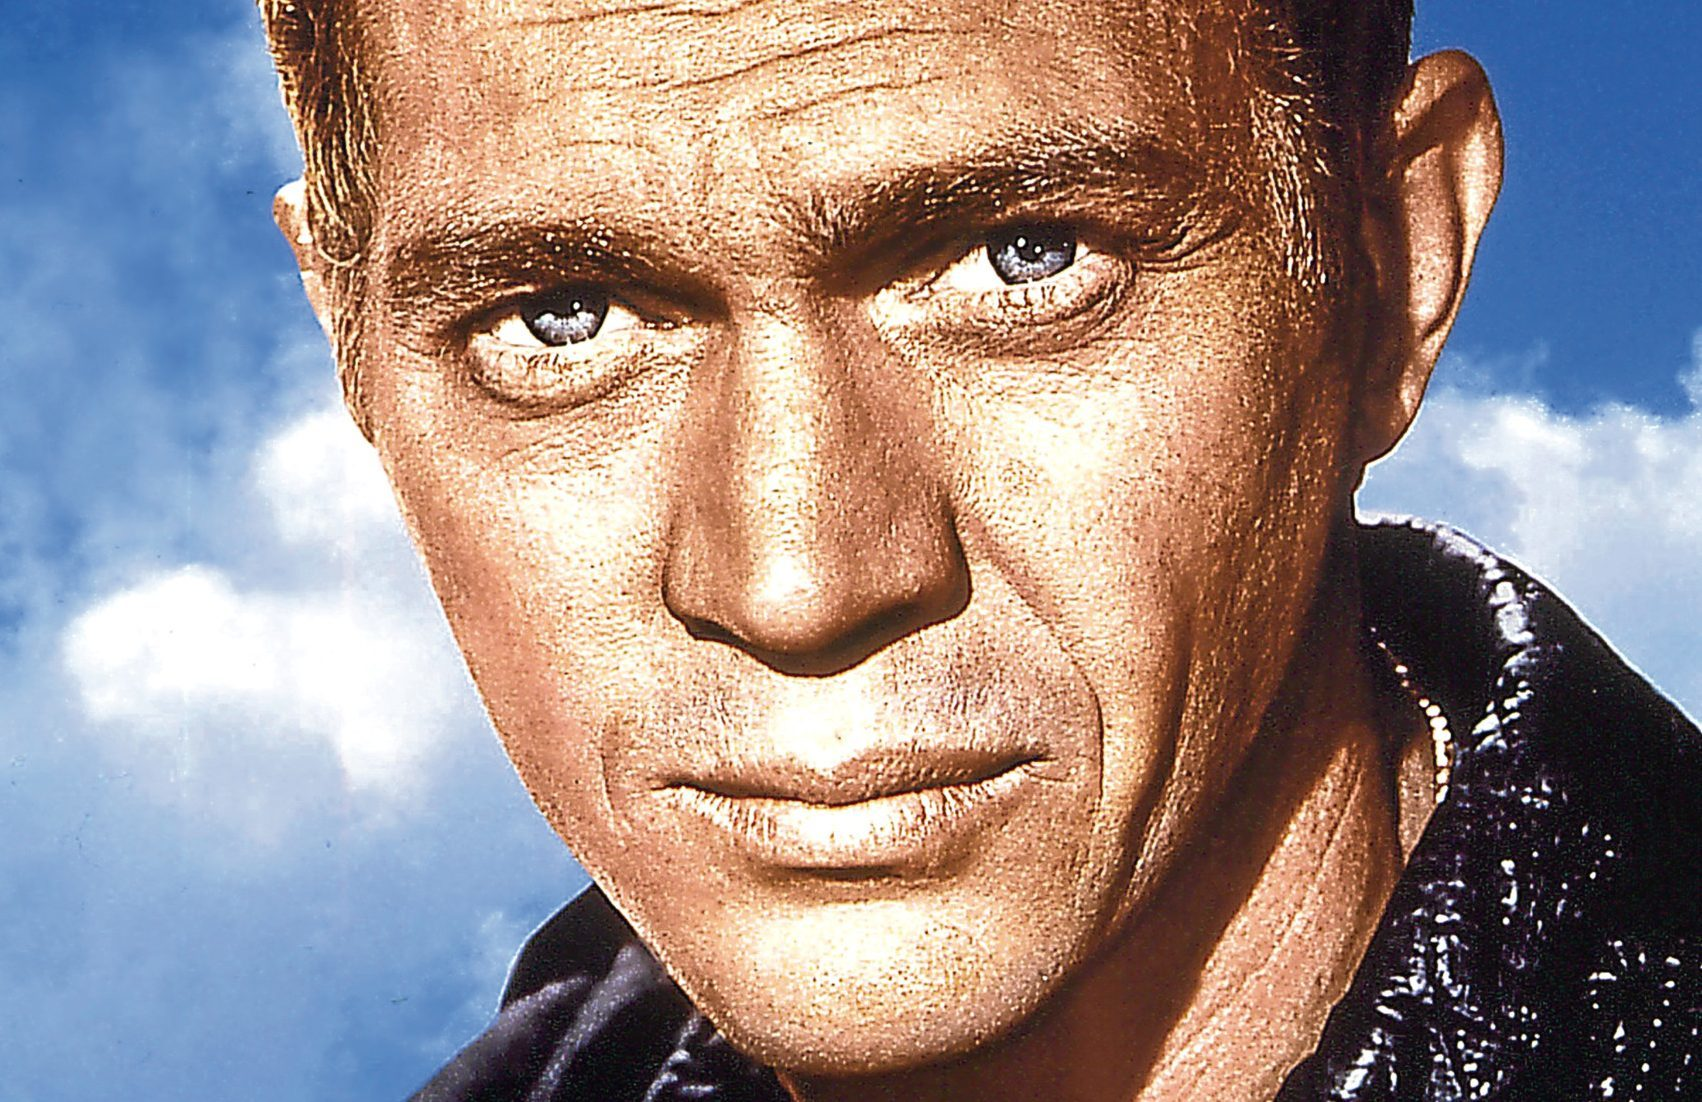 Steve McQueen in The Great Escape, 1963 (Allstar/UNITED ARTISTS)